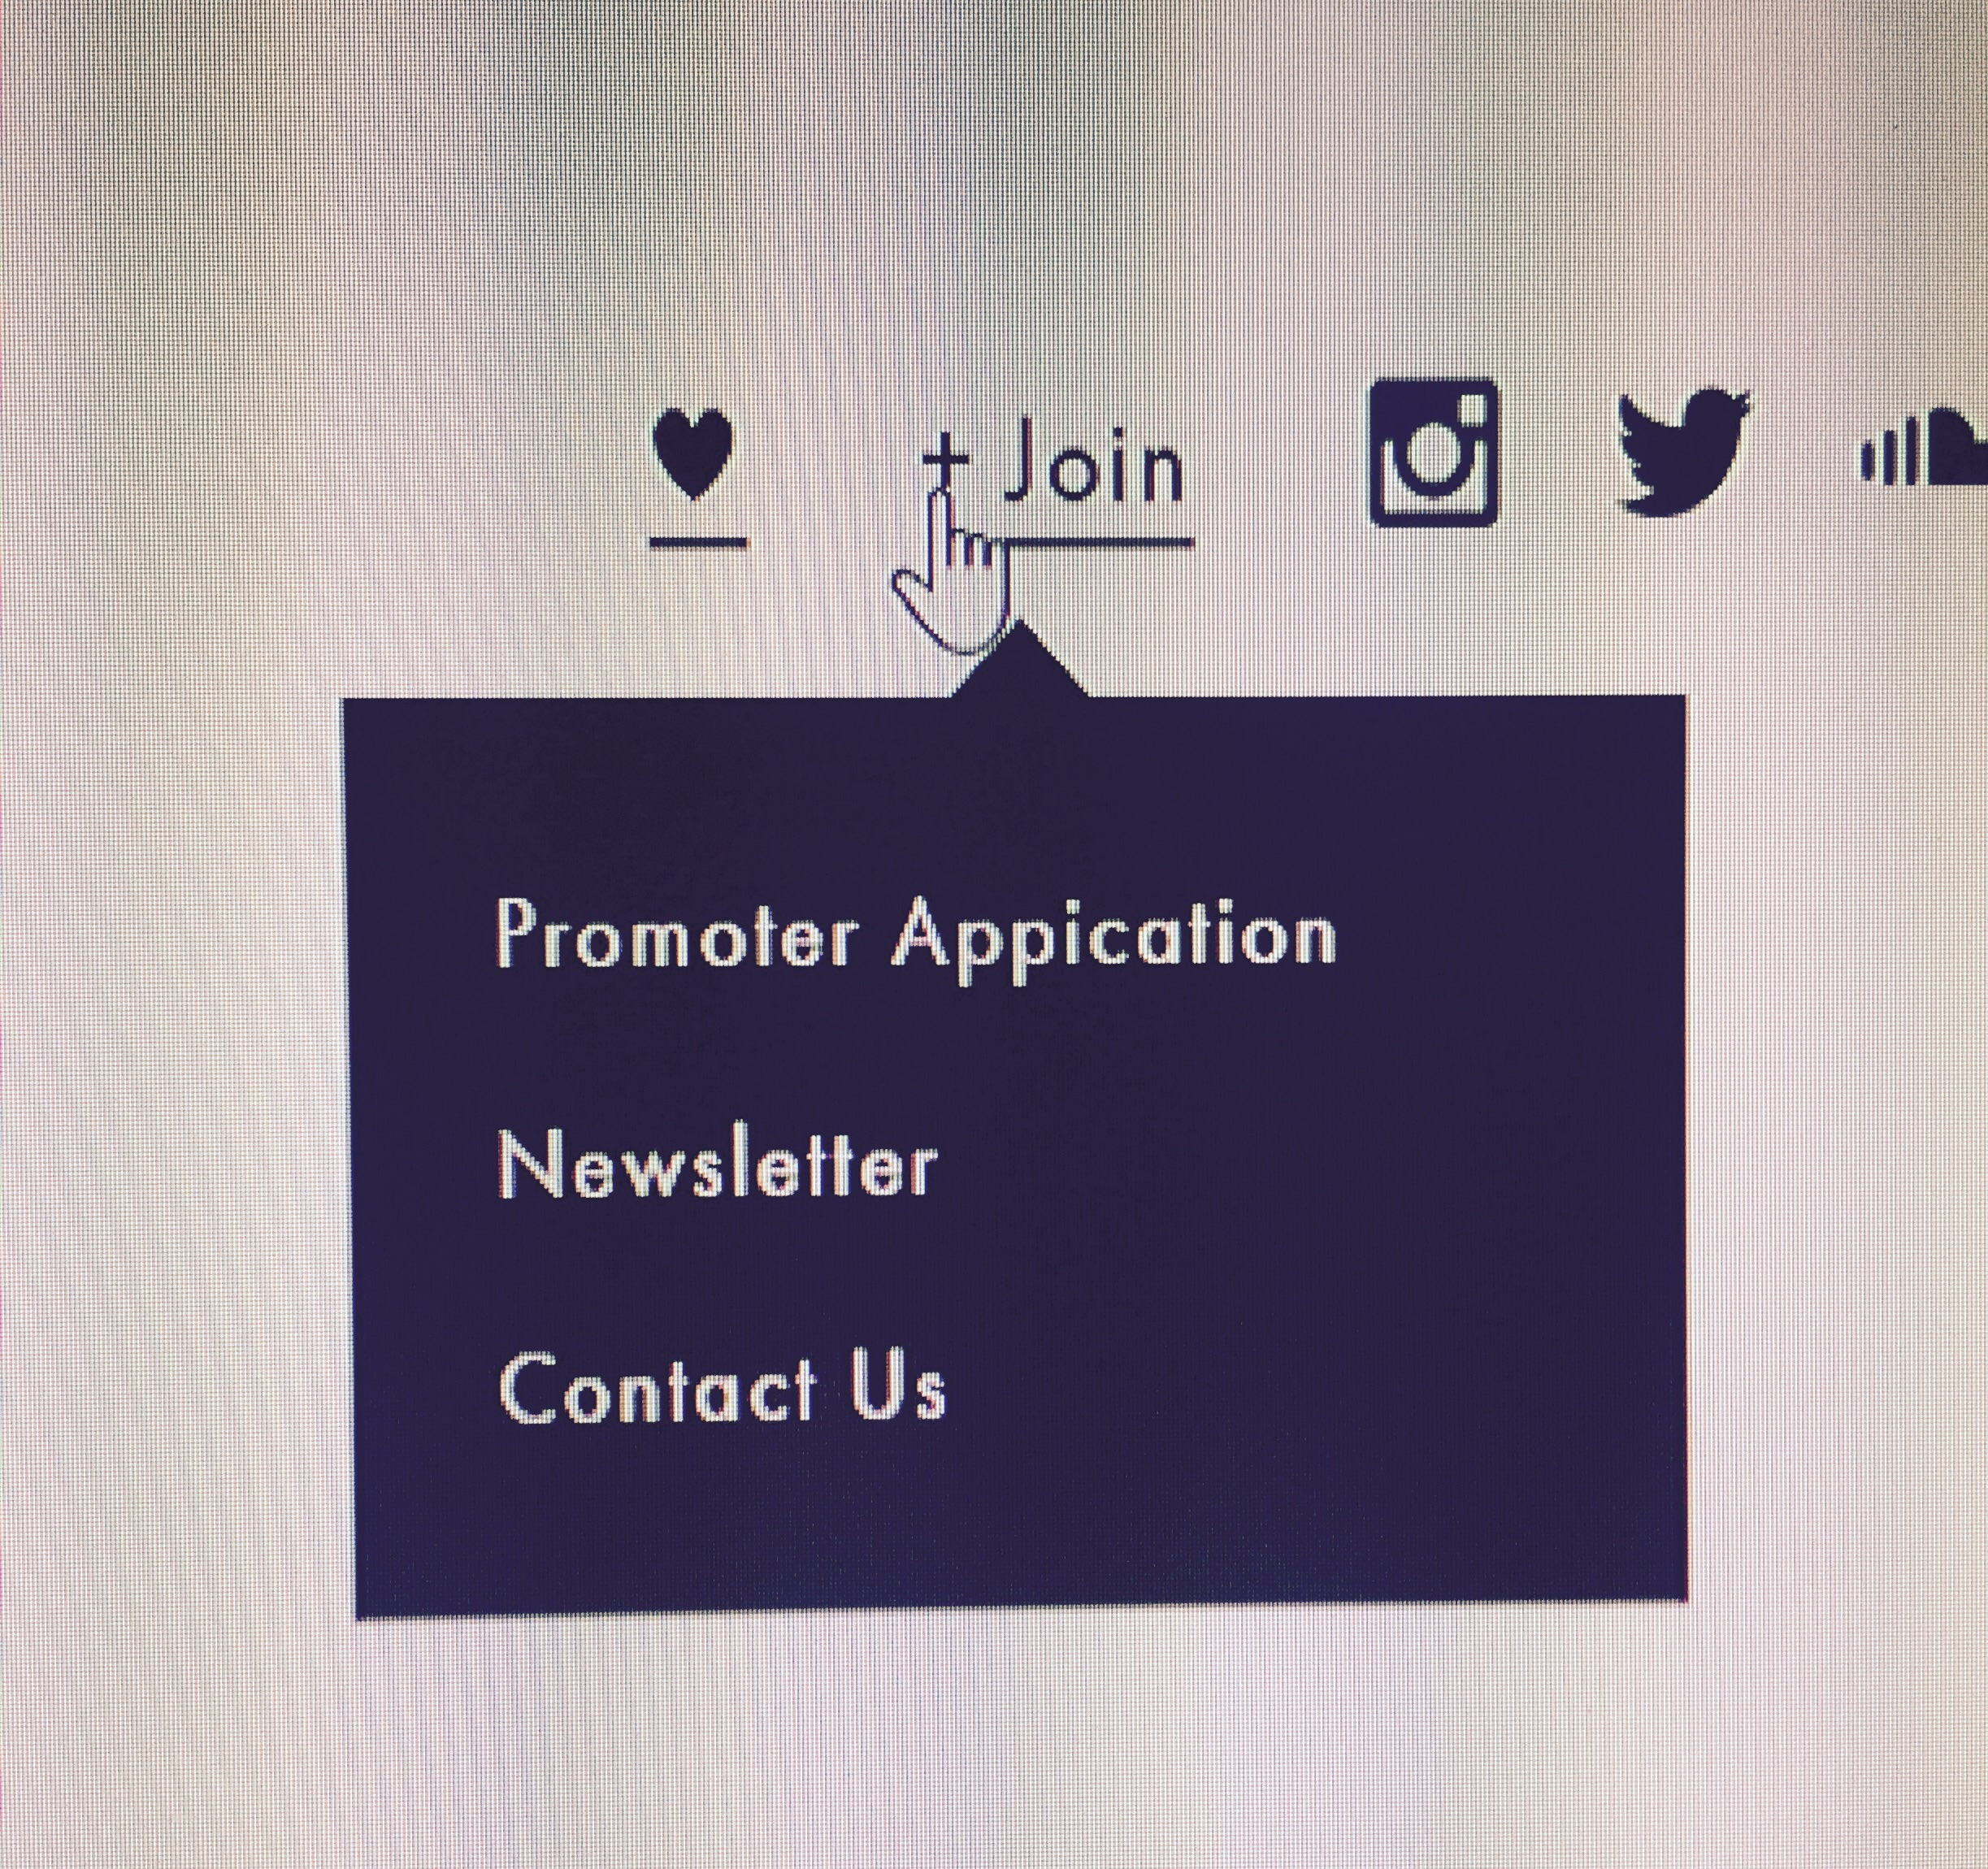 Click: Promoter Application